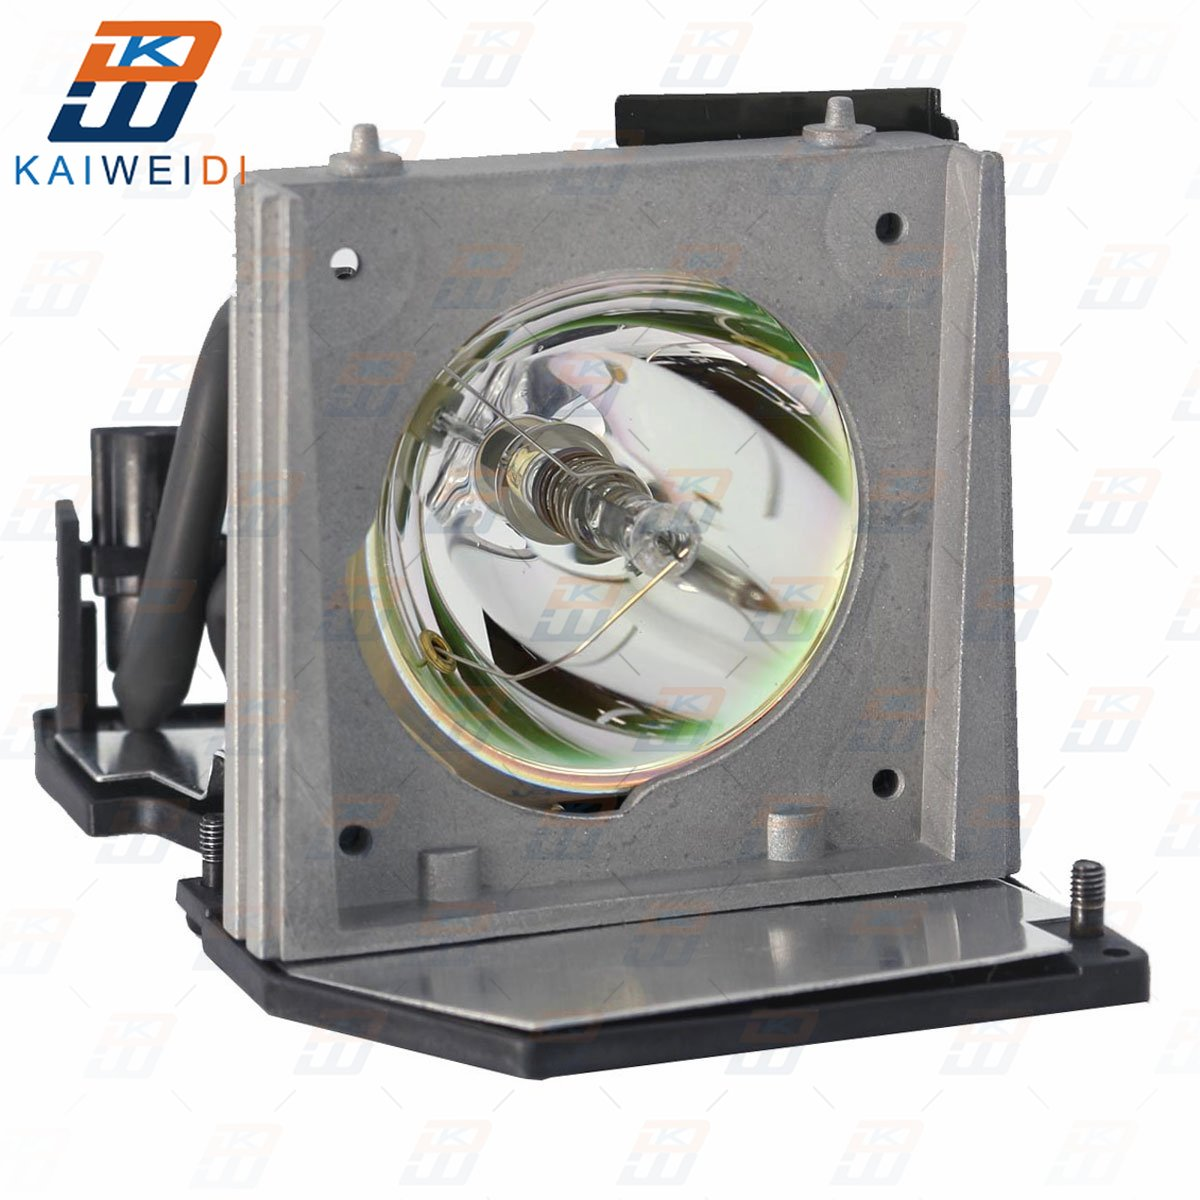 310-5513 725-10056 EC.J1001.001 730-11445 0G5374 Projector Lamp For Dell 2300MP For Acer PD116P PD521D PD523 PD523D PD525 PD525D